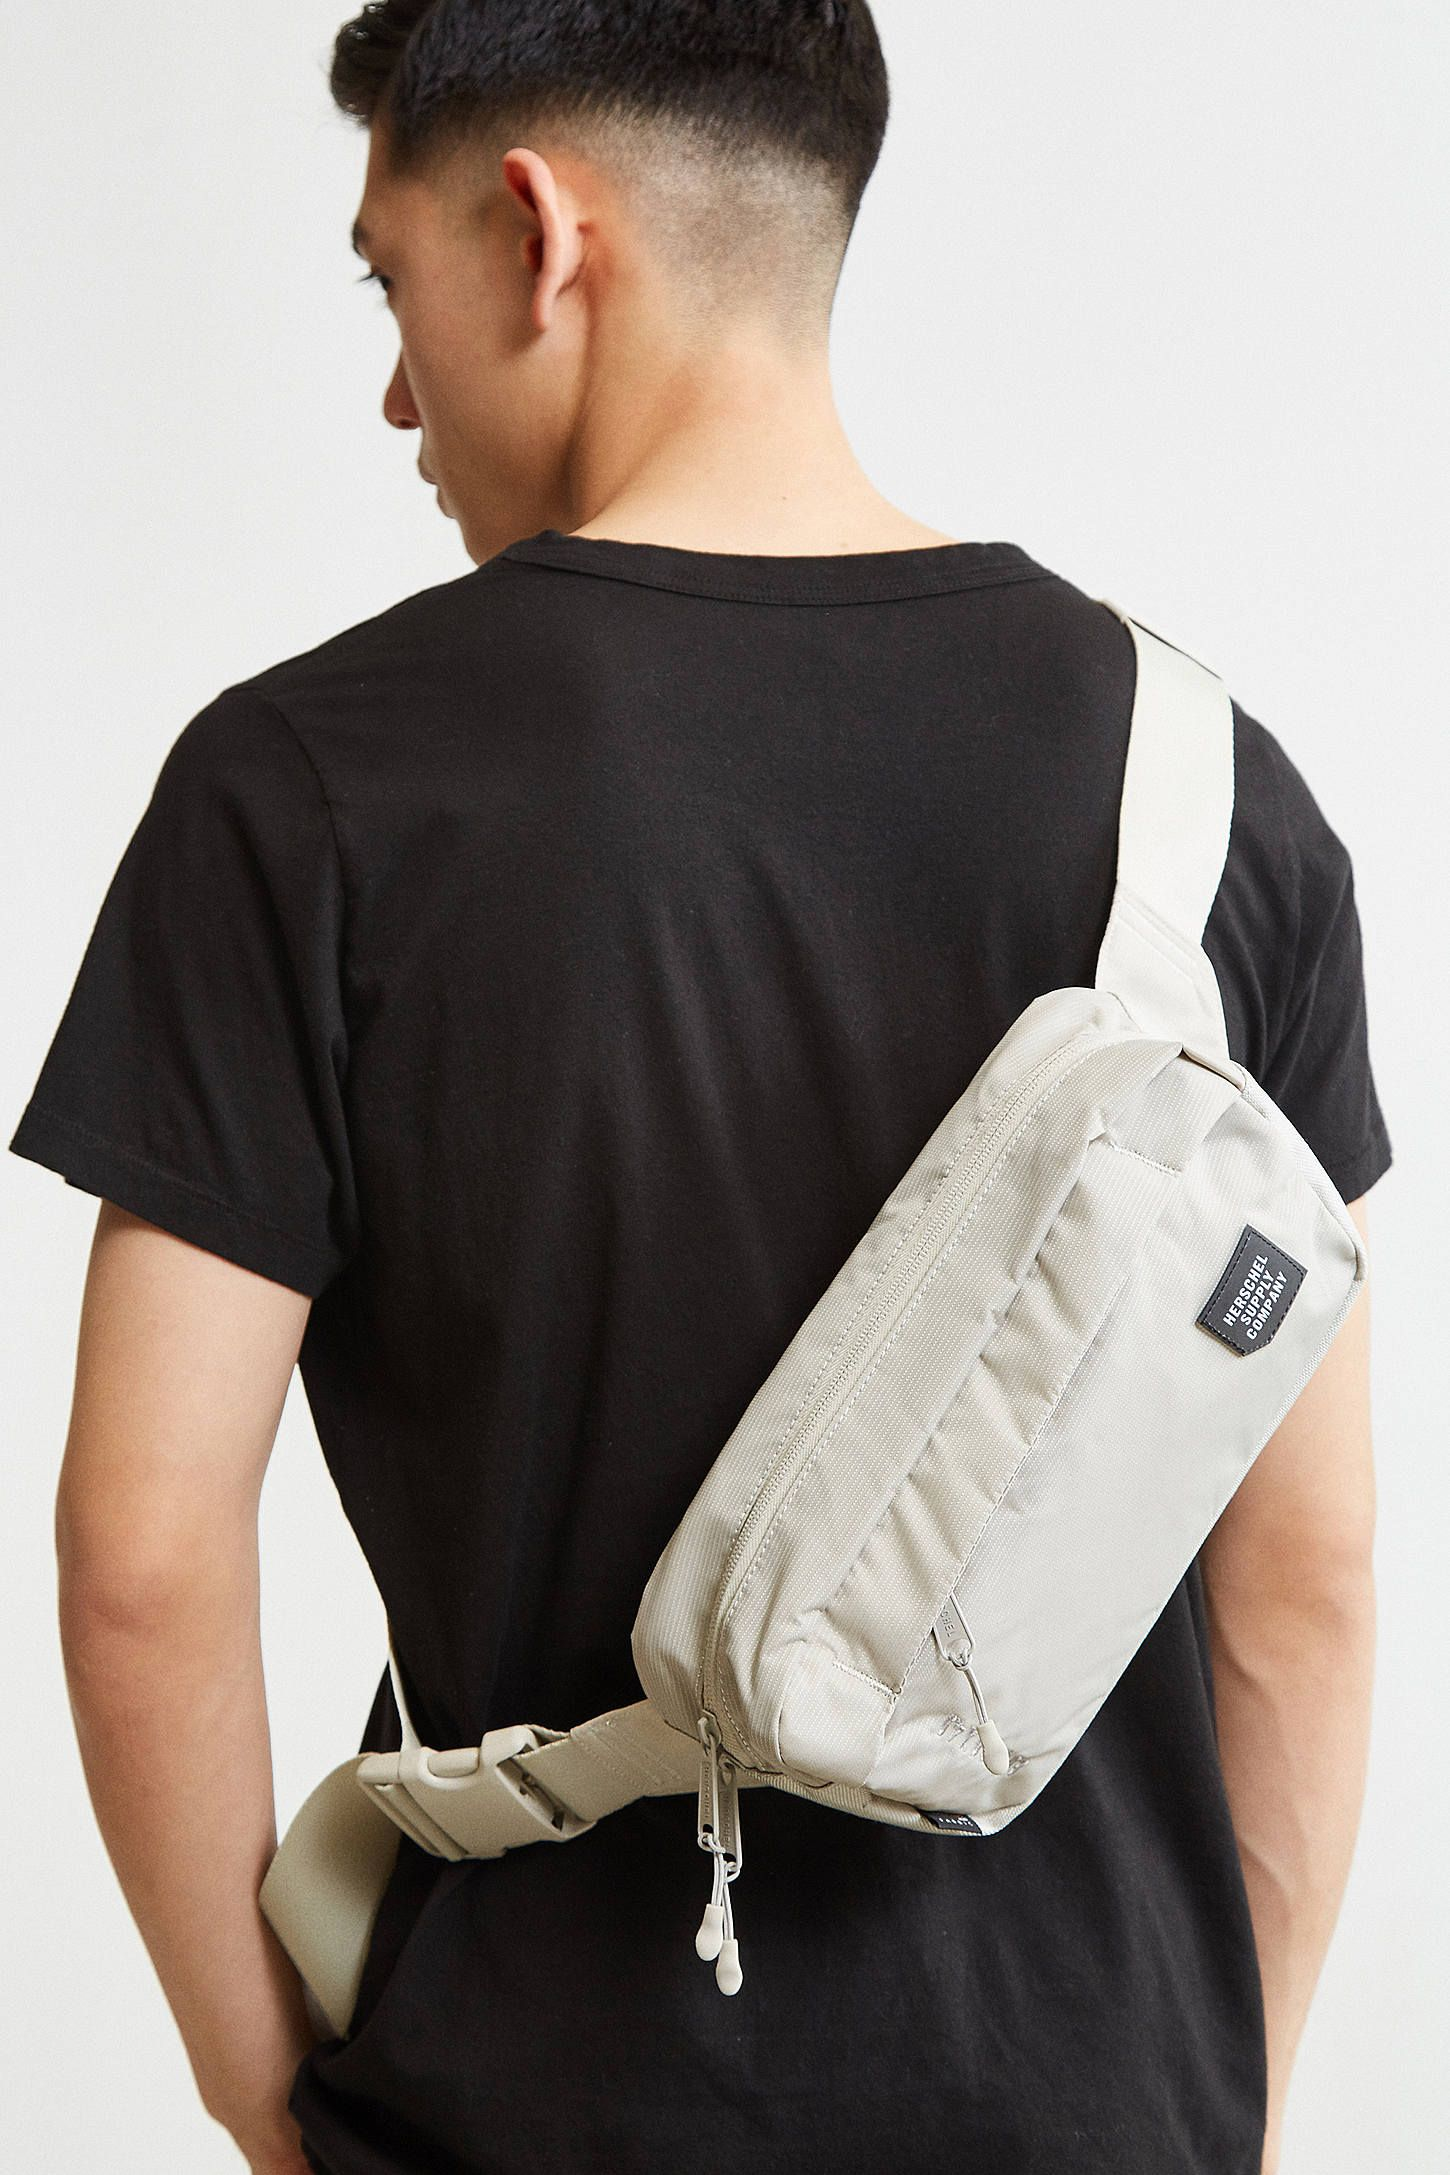 b1b03ba90db Shop the Herschel Supply Co. Tour Medium Sling Bag and more Urban Outfitters  at Urban Outfitters. Read customer reviews